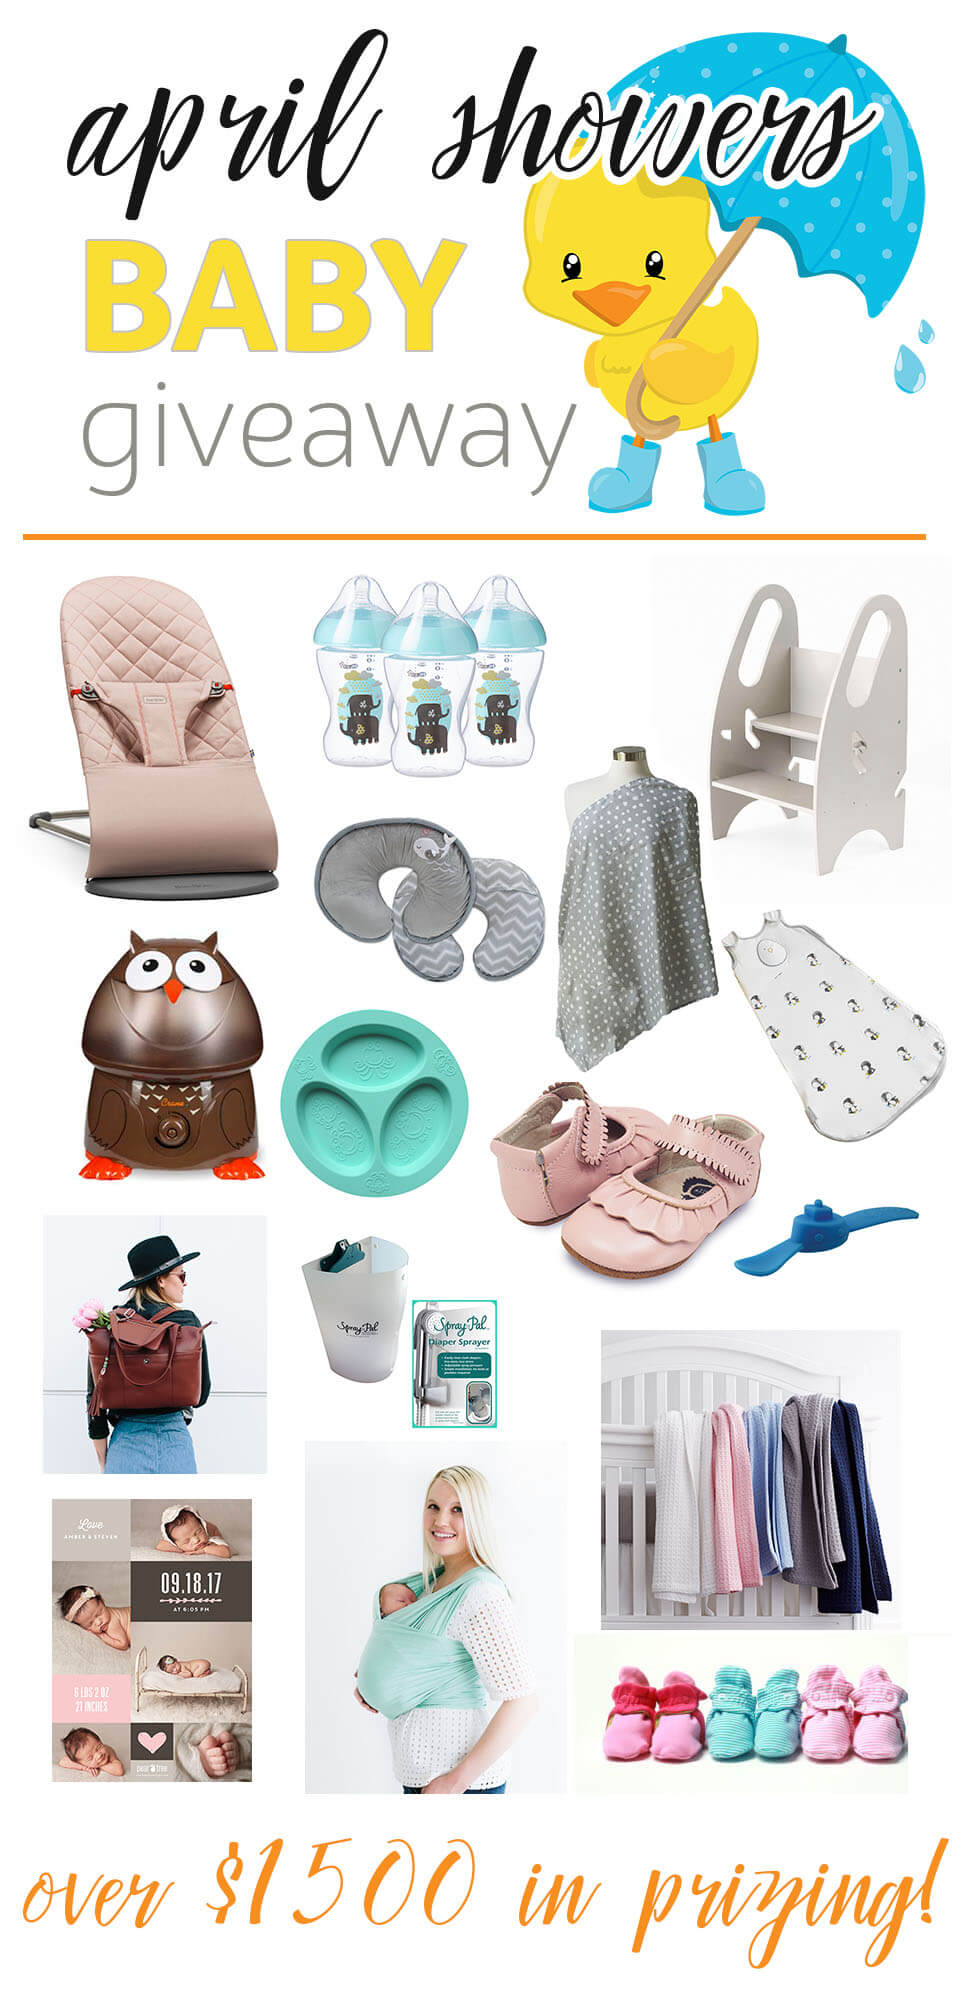 April Showers Baby Giveaway | Ellie And Addie